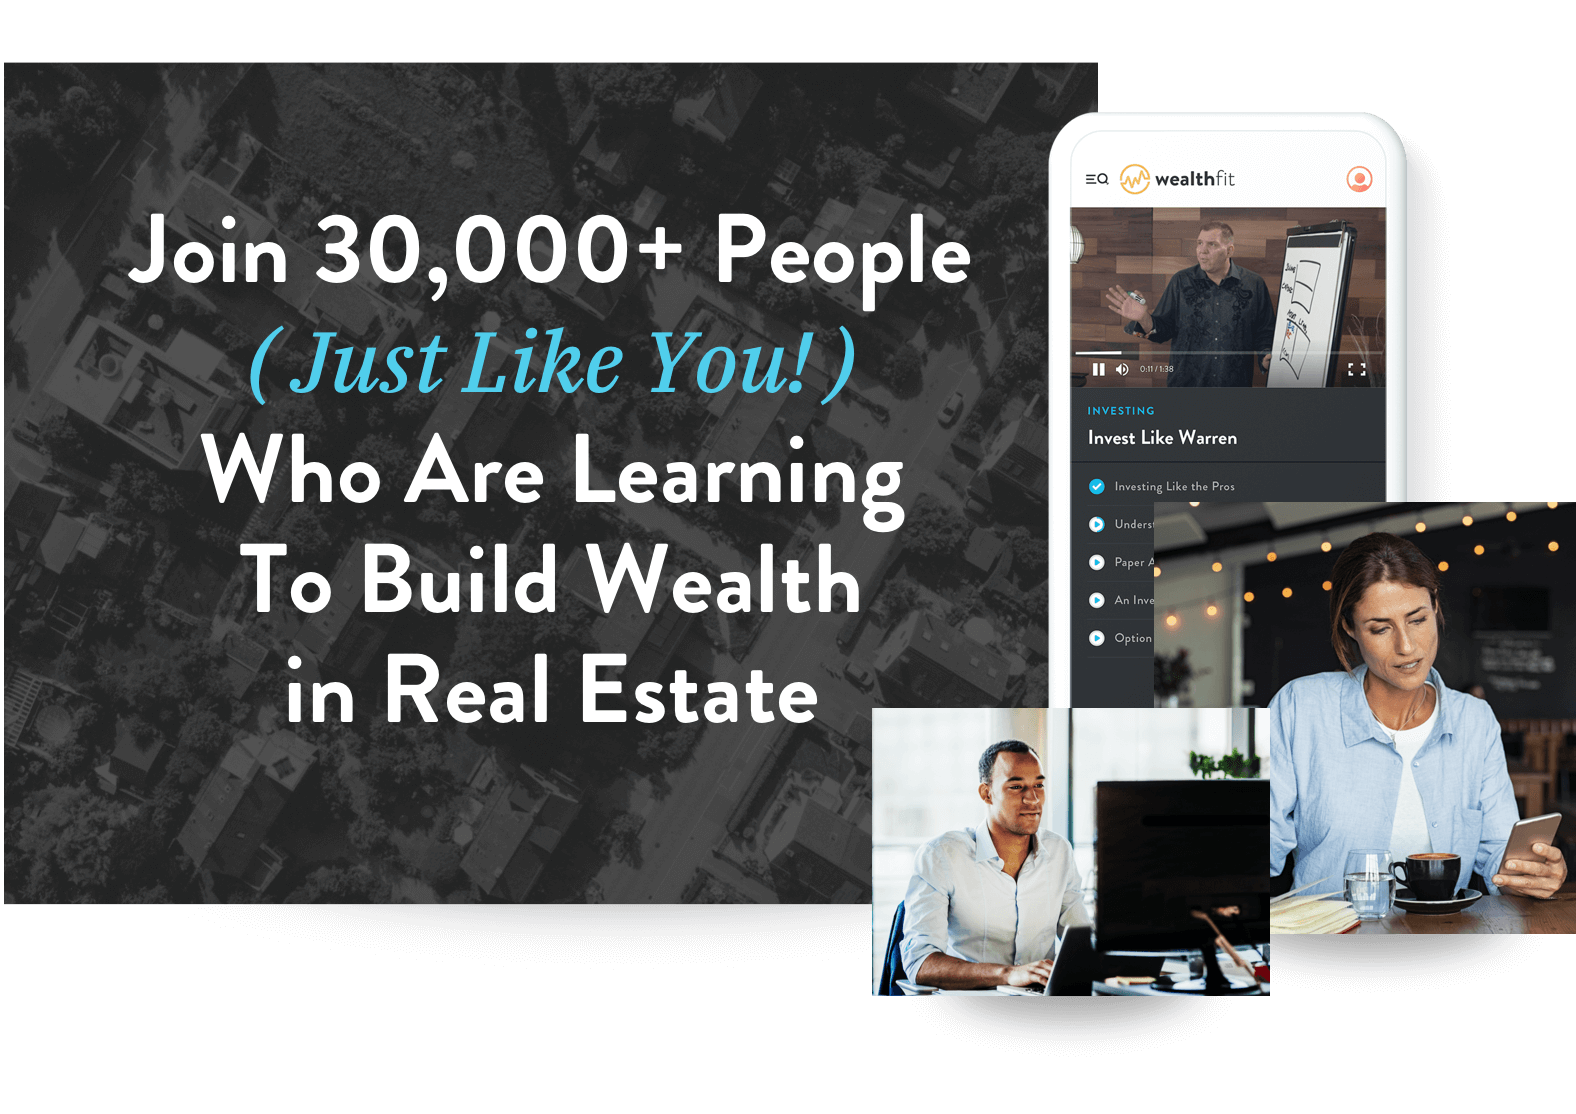 Join 30,000+ people just like you who are learning to build wealth in real estate